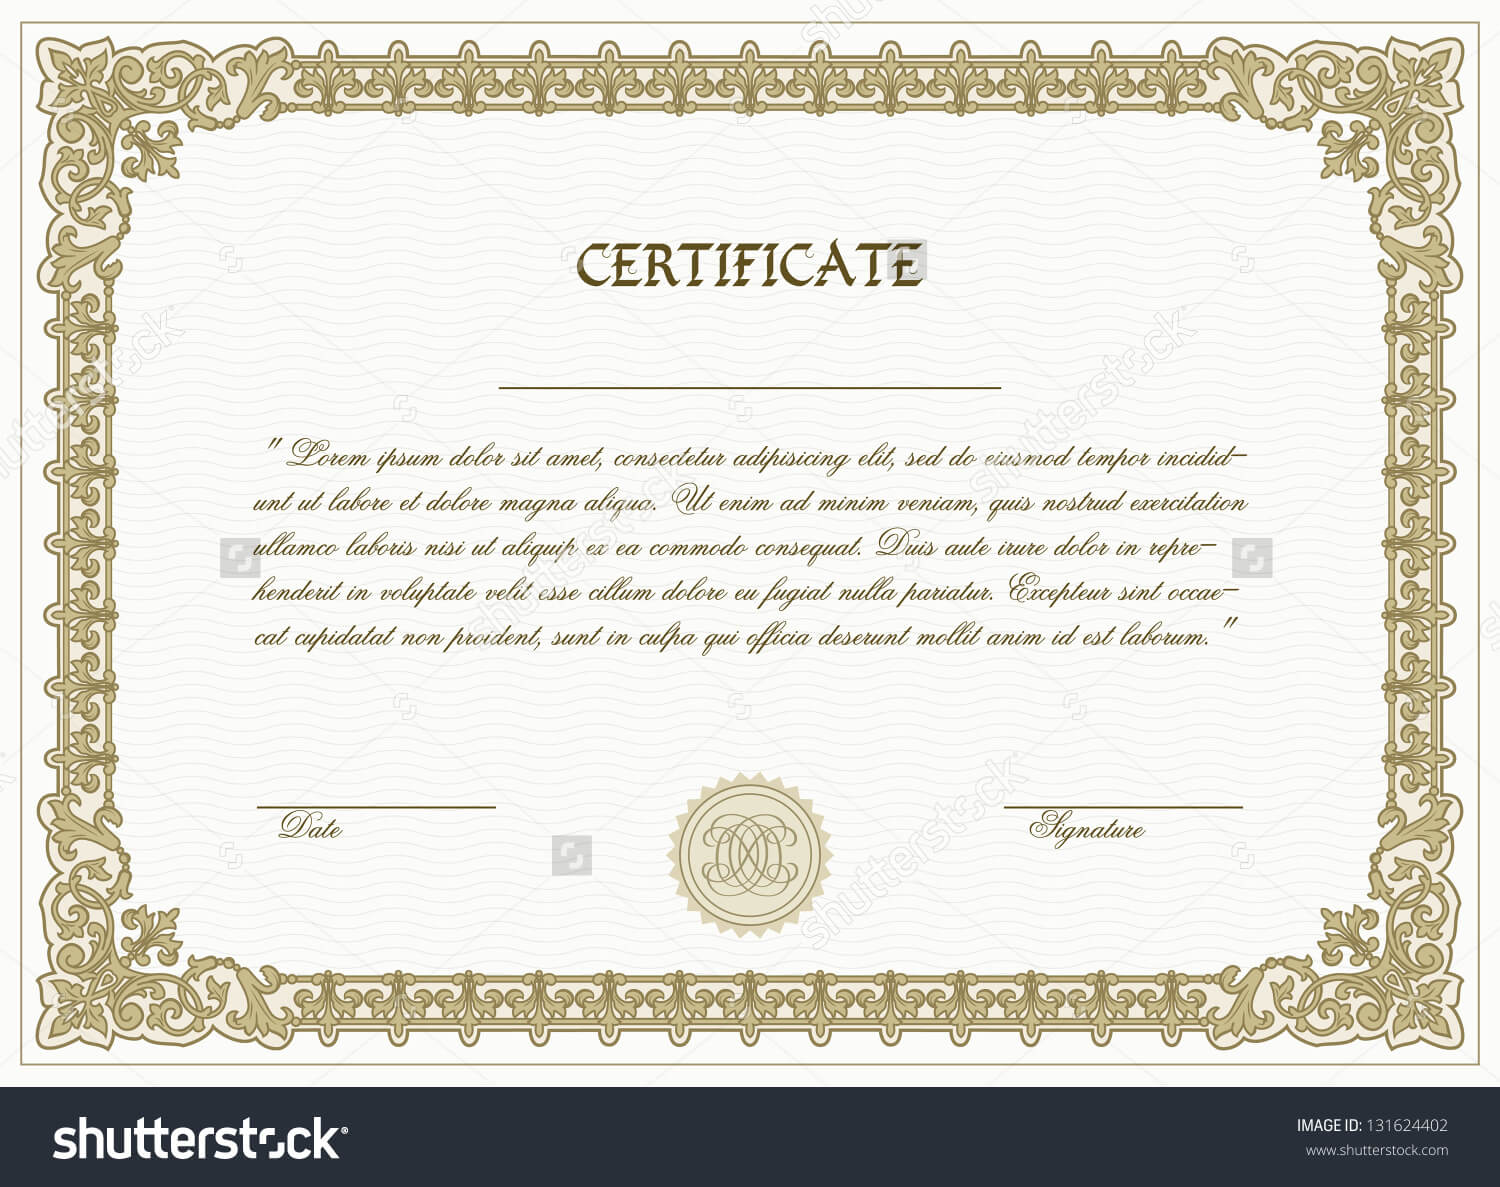 High Resolution Certificate Template - Atlantaauctionco In High Resolution Certificate Template